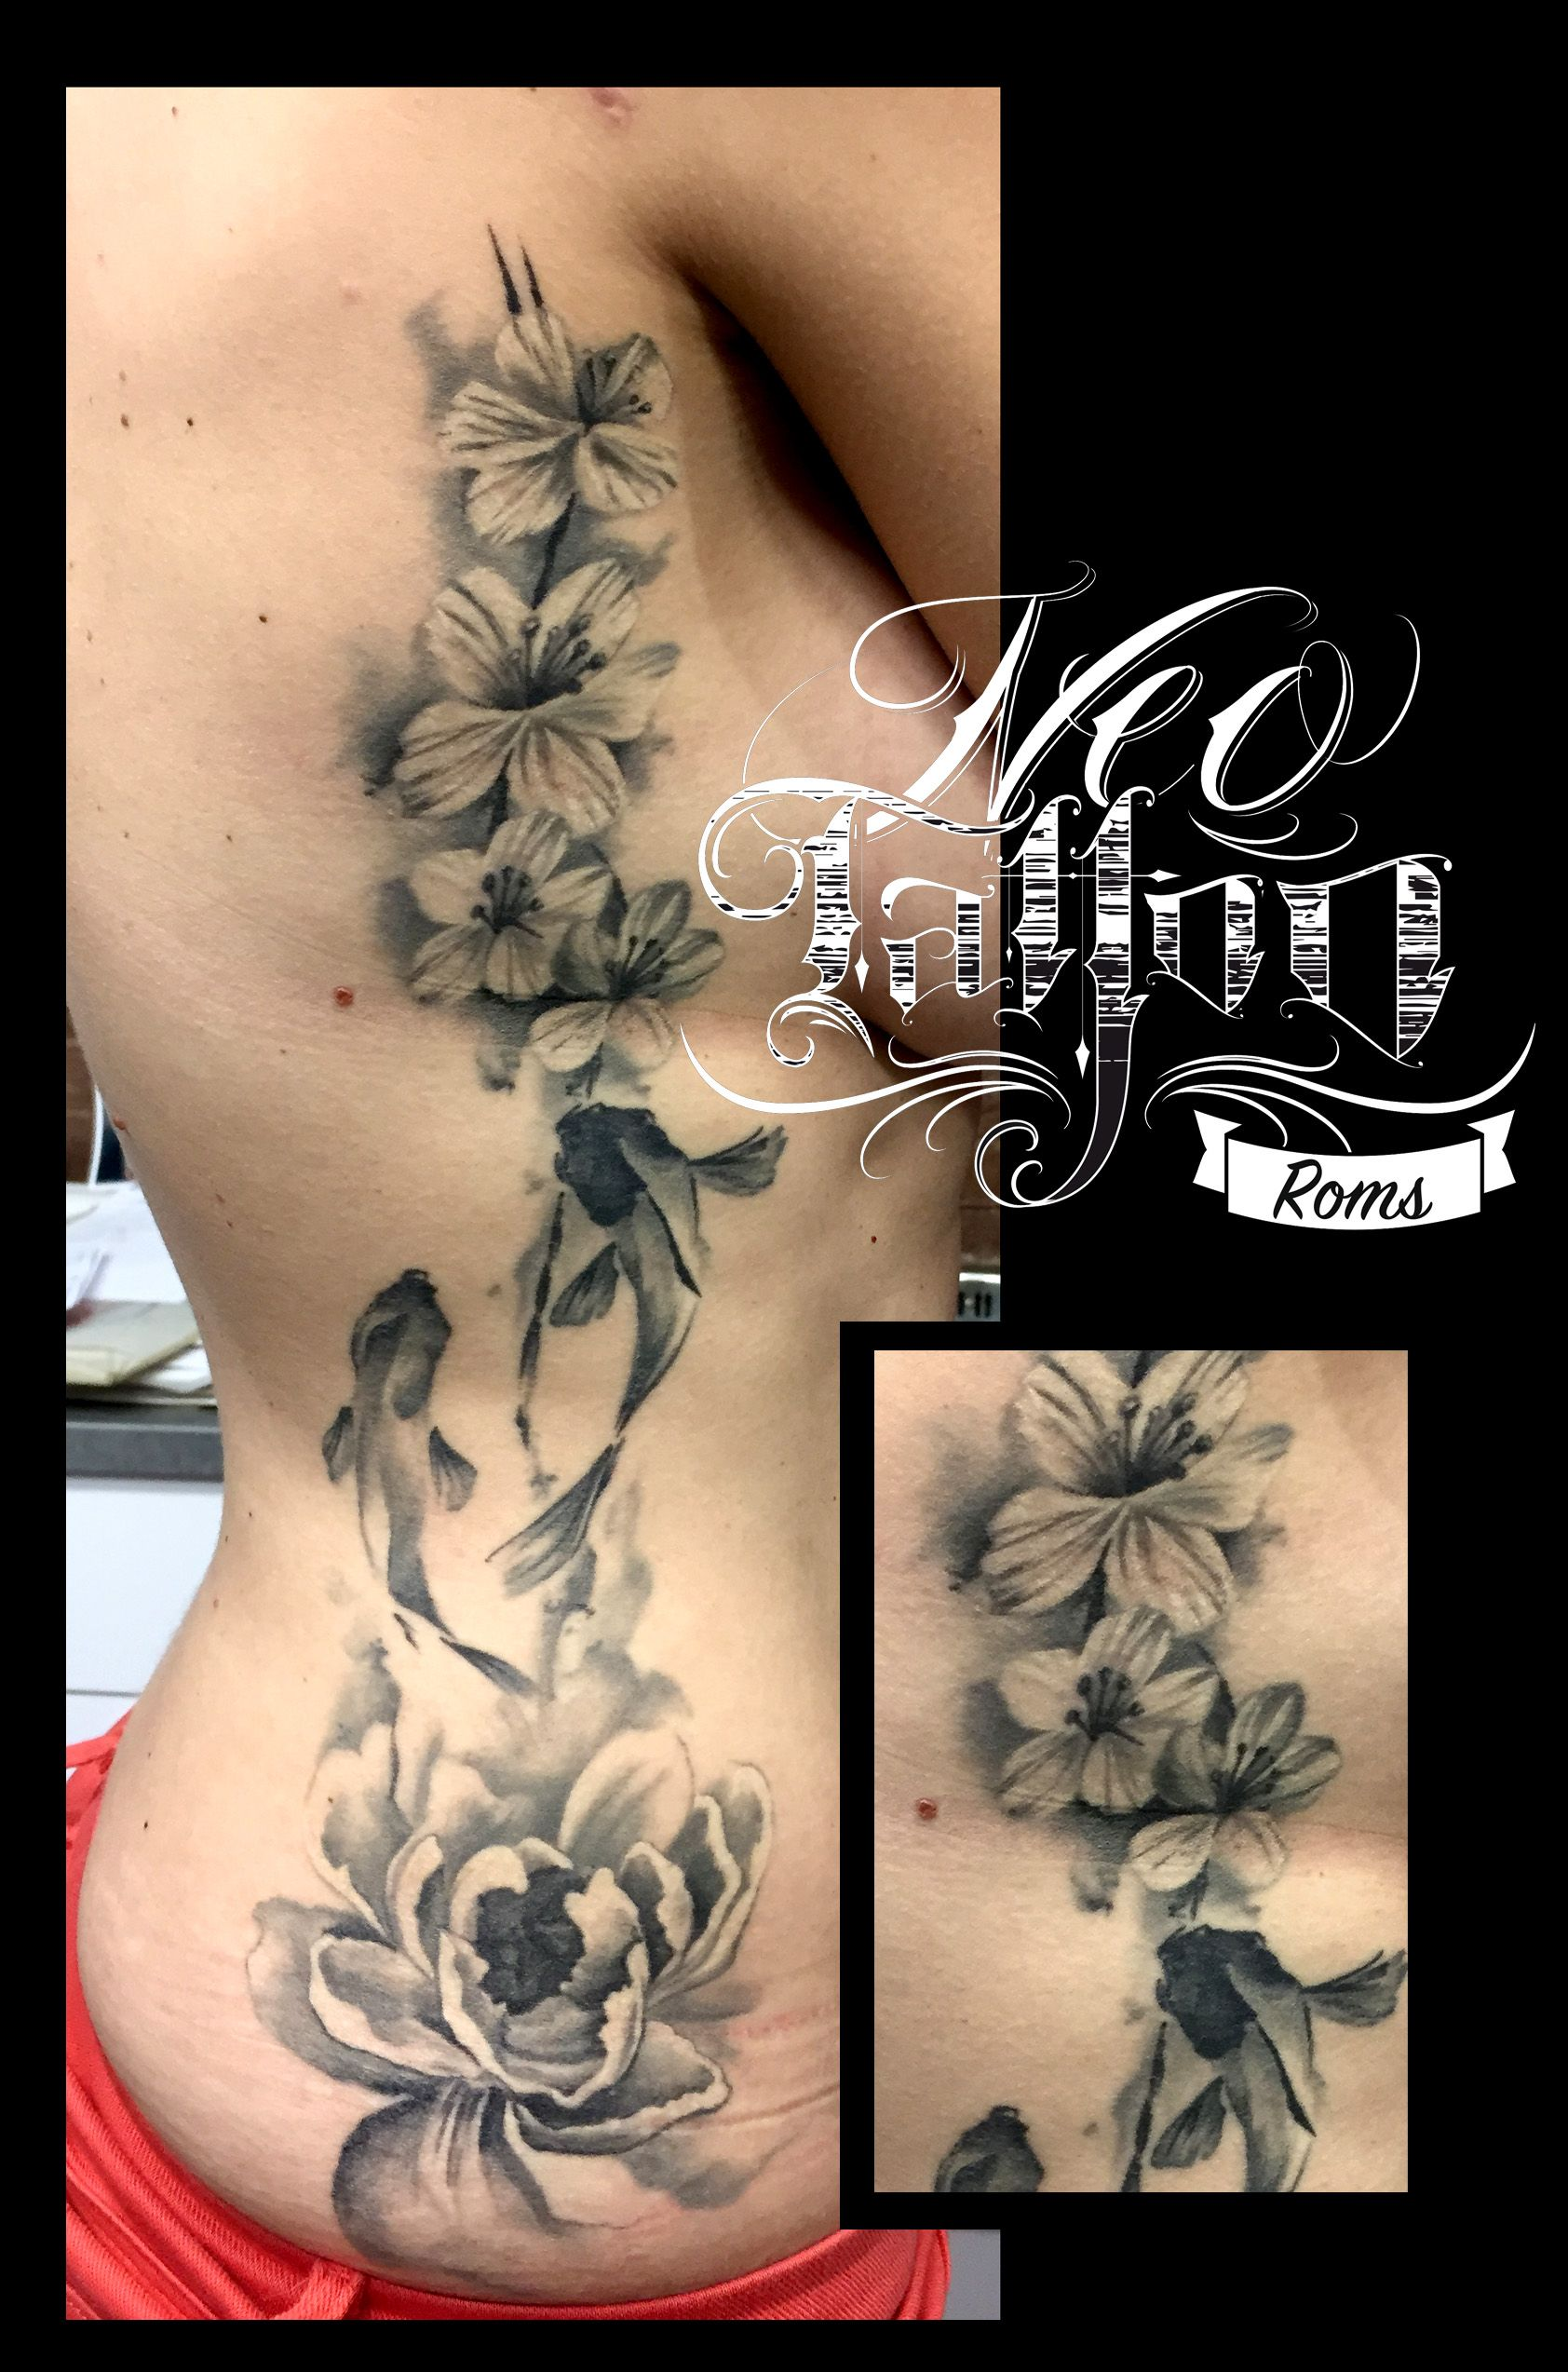 Tatouage Romain Neotattoo Fleuriste Tattoo Tatuaje Tattoo